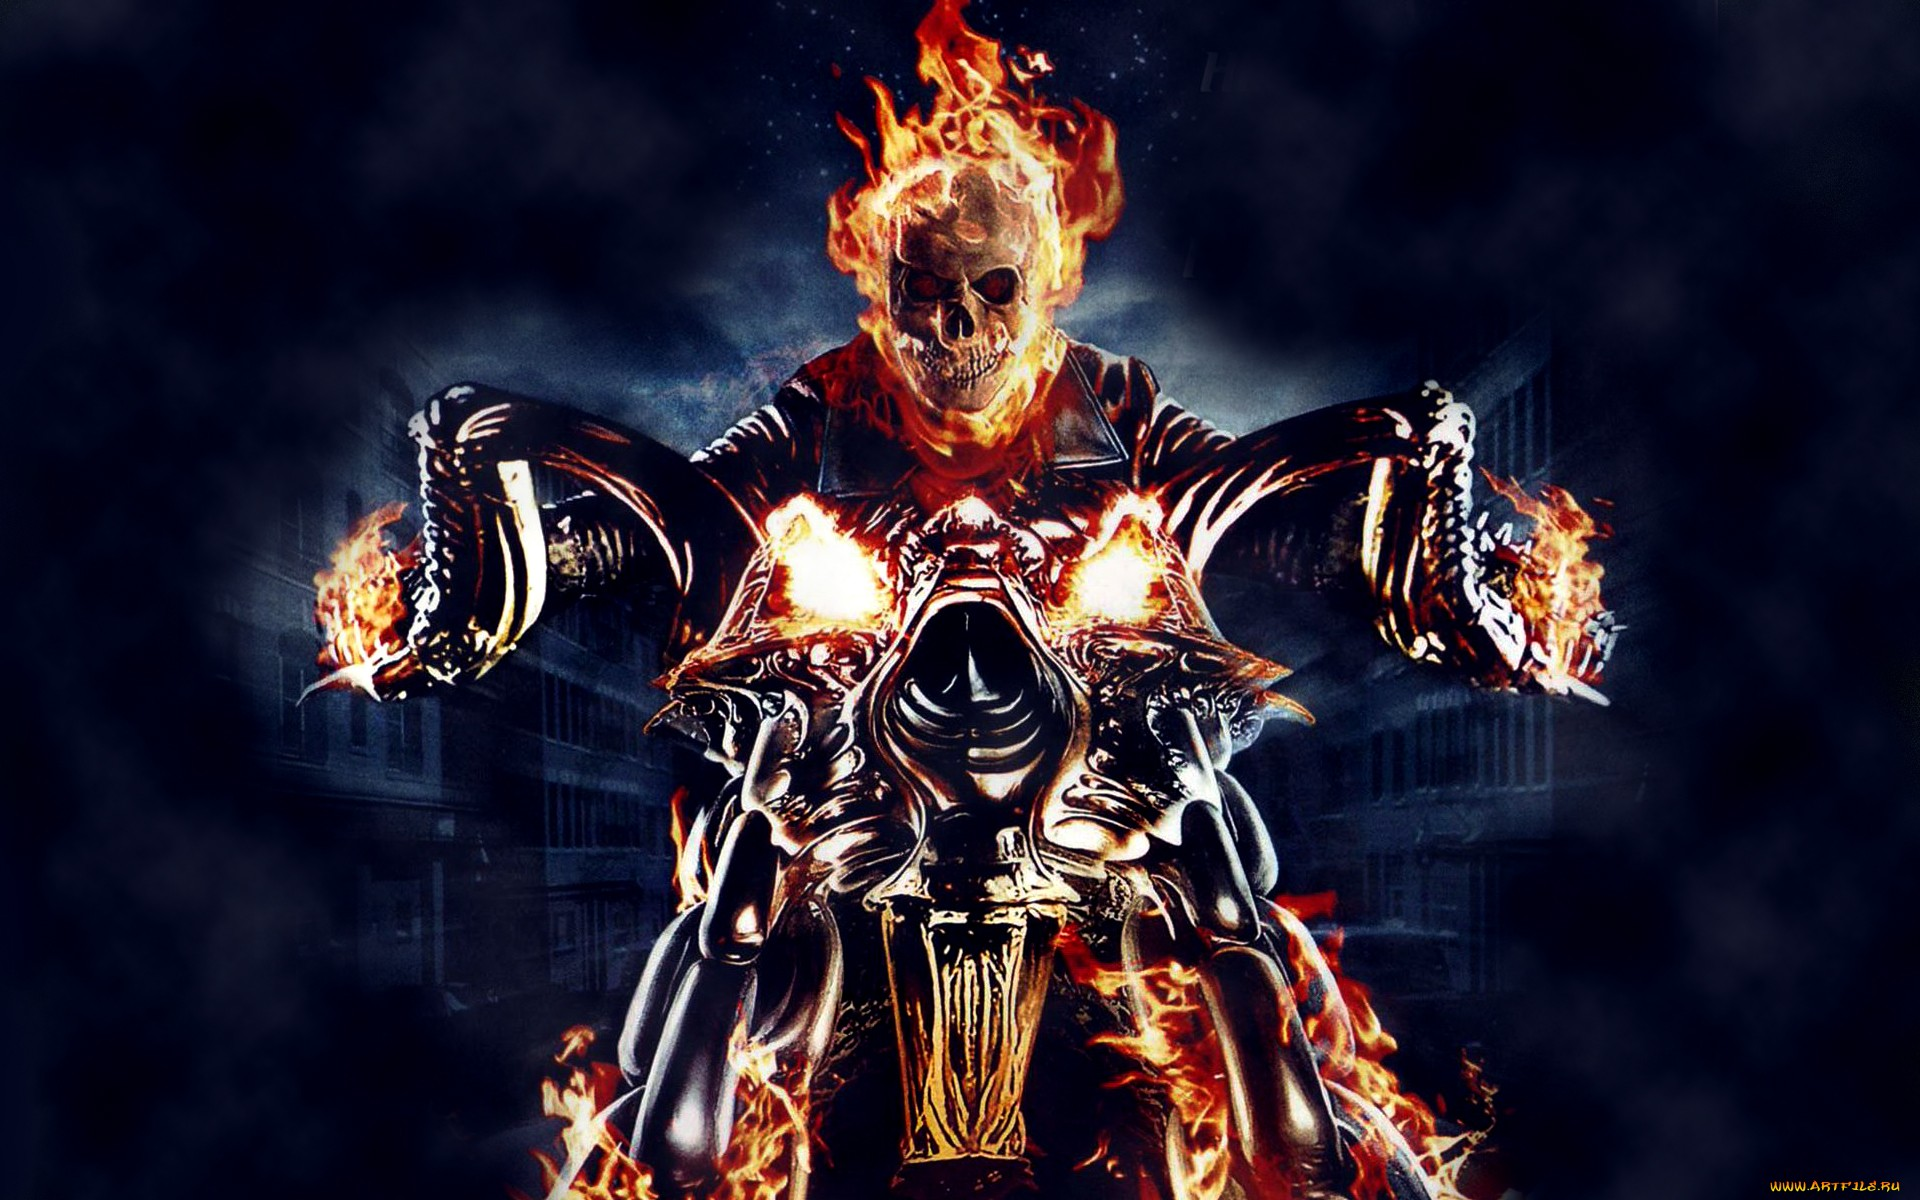 Ghost Rider Computer Wallpapers Desktop Backgrounds 1920x1200 ID 1920x1200